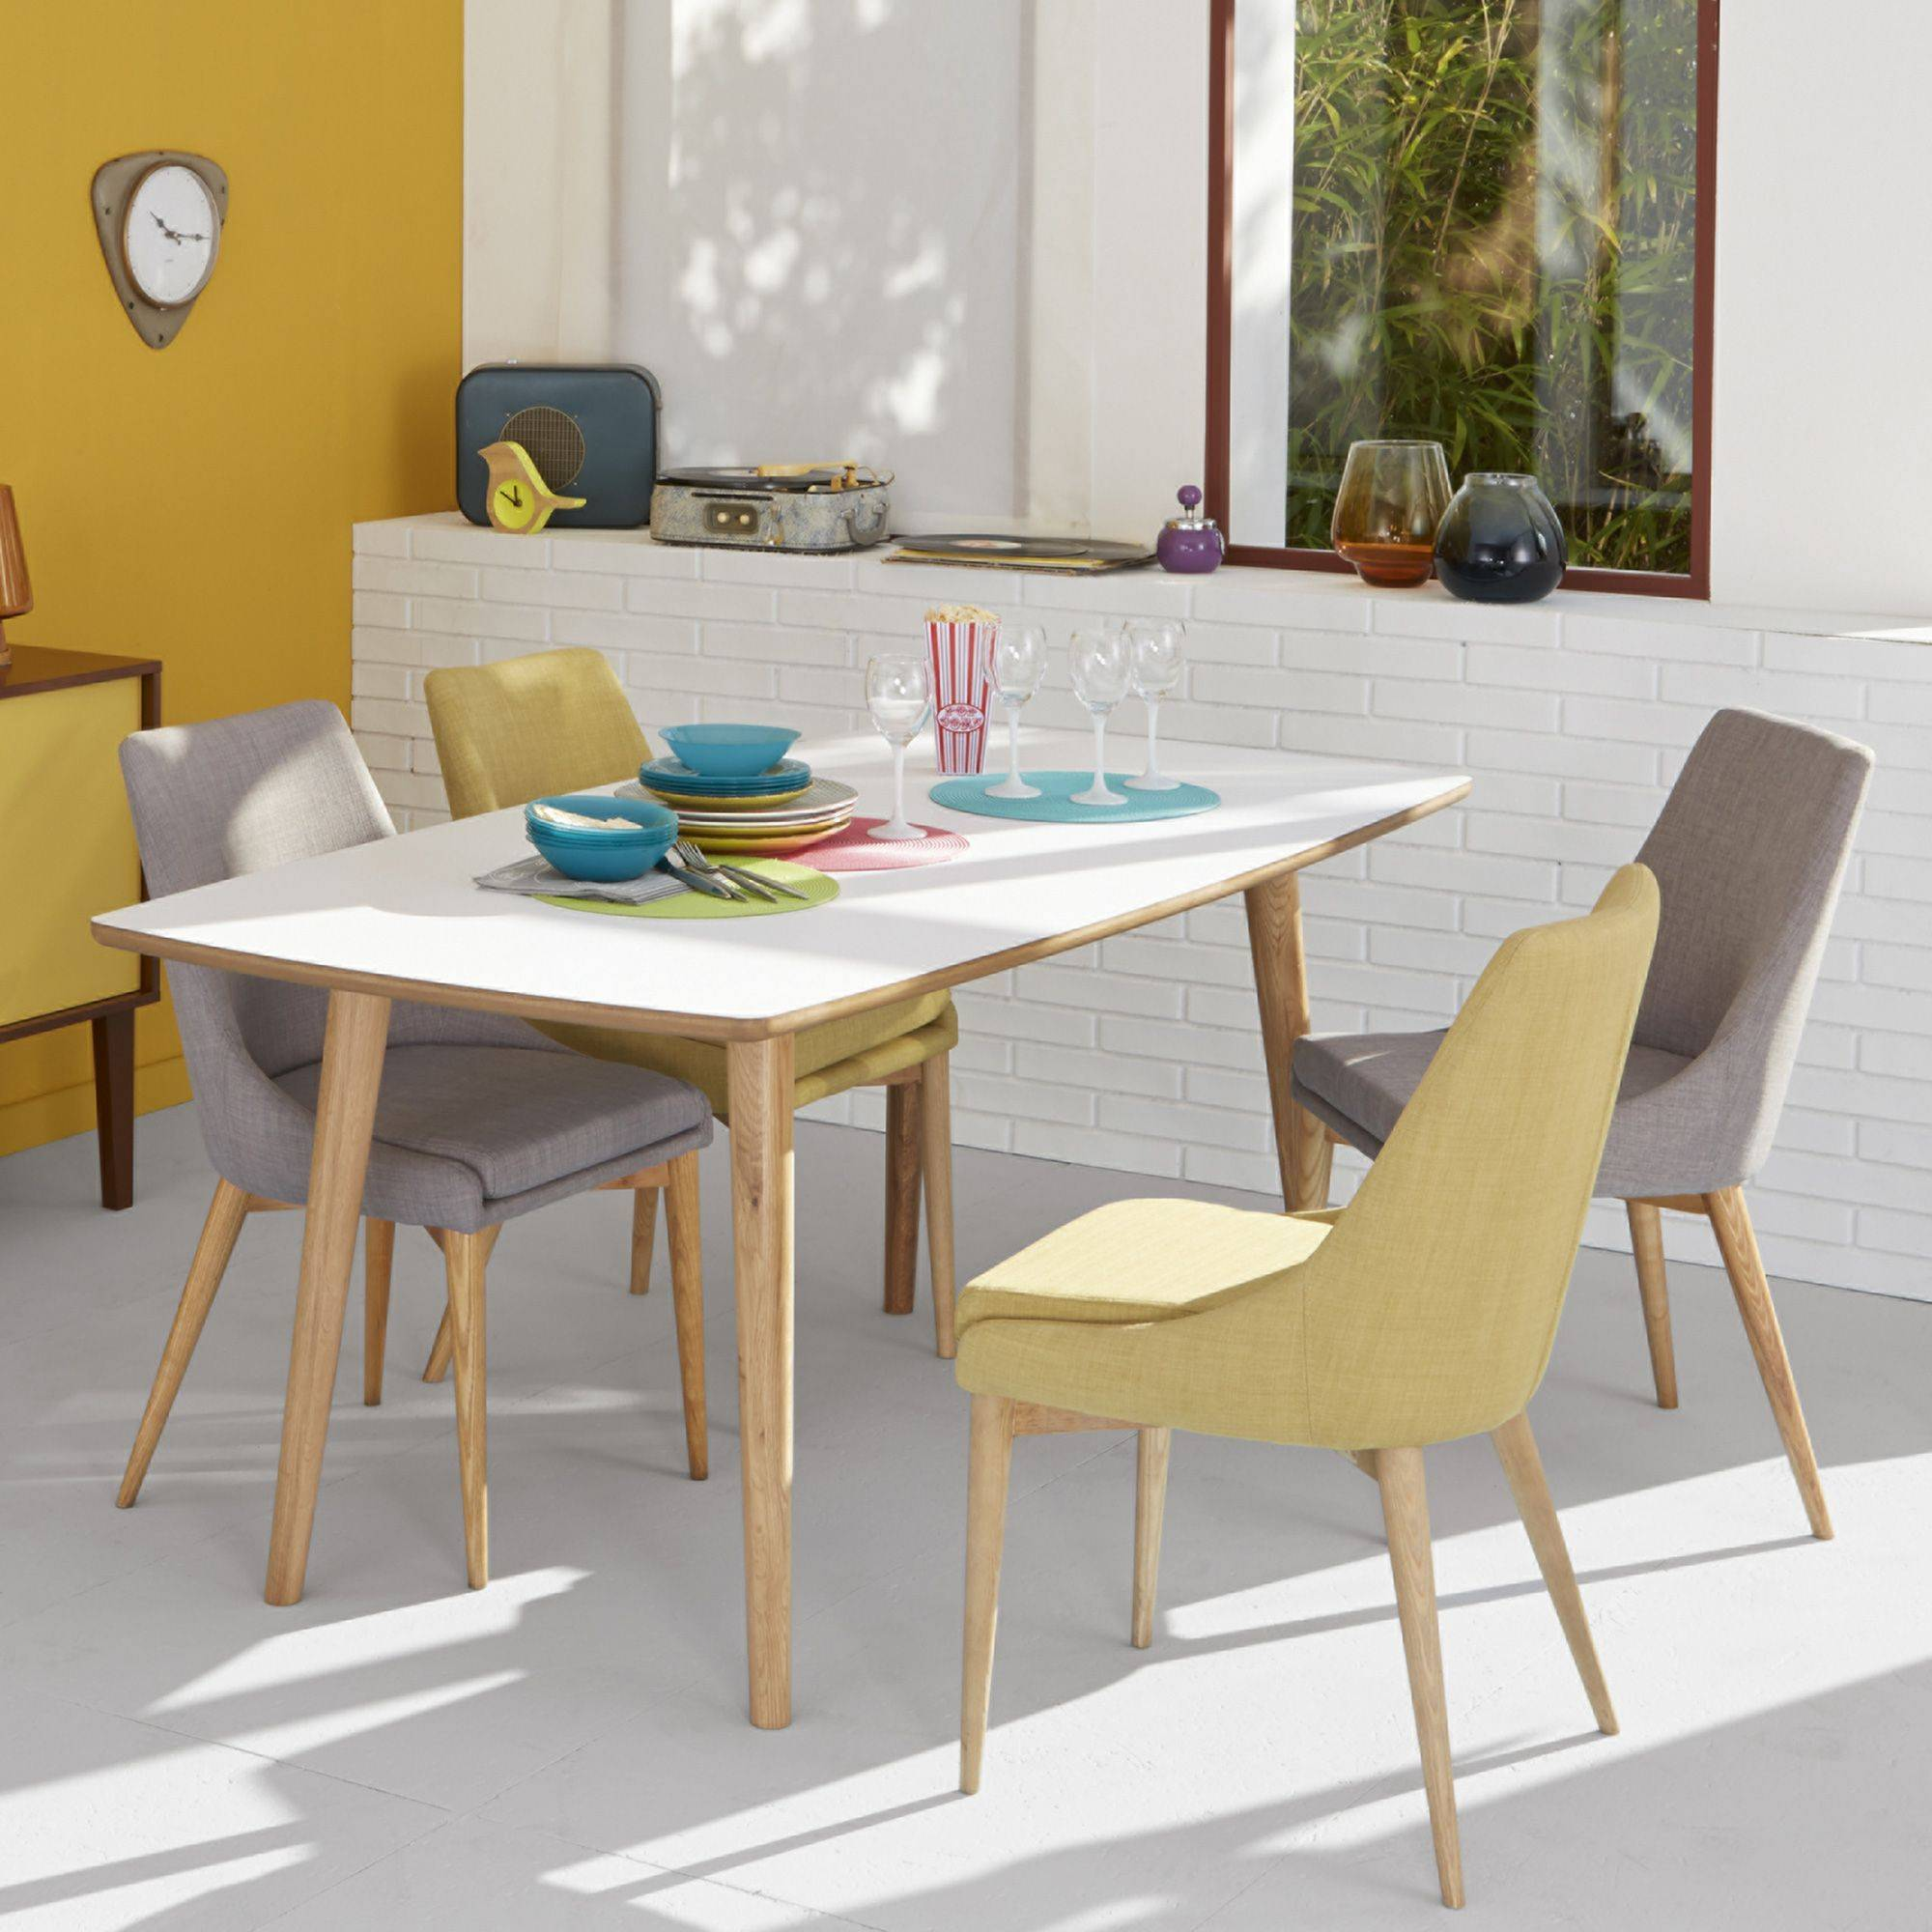 Comment choisir entre chaise et tabouret for Table et chaise moderne